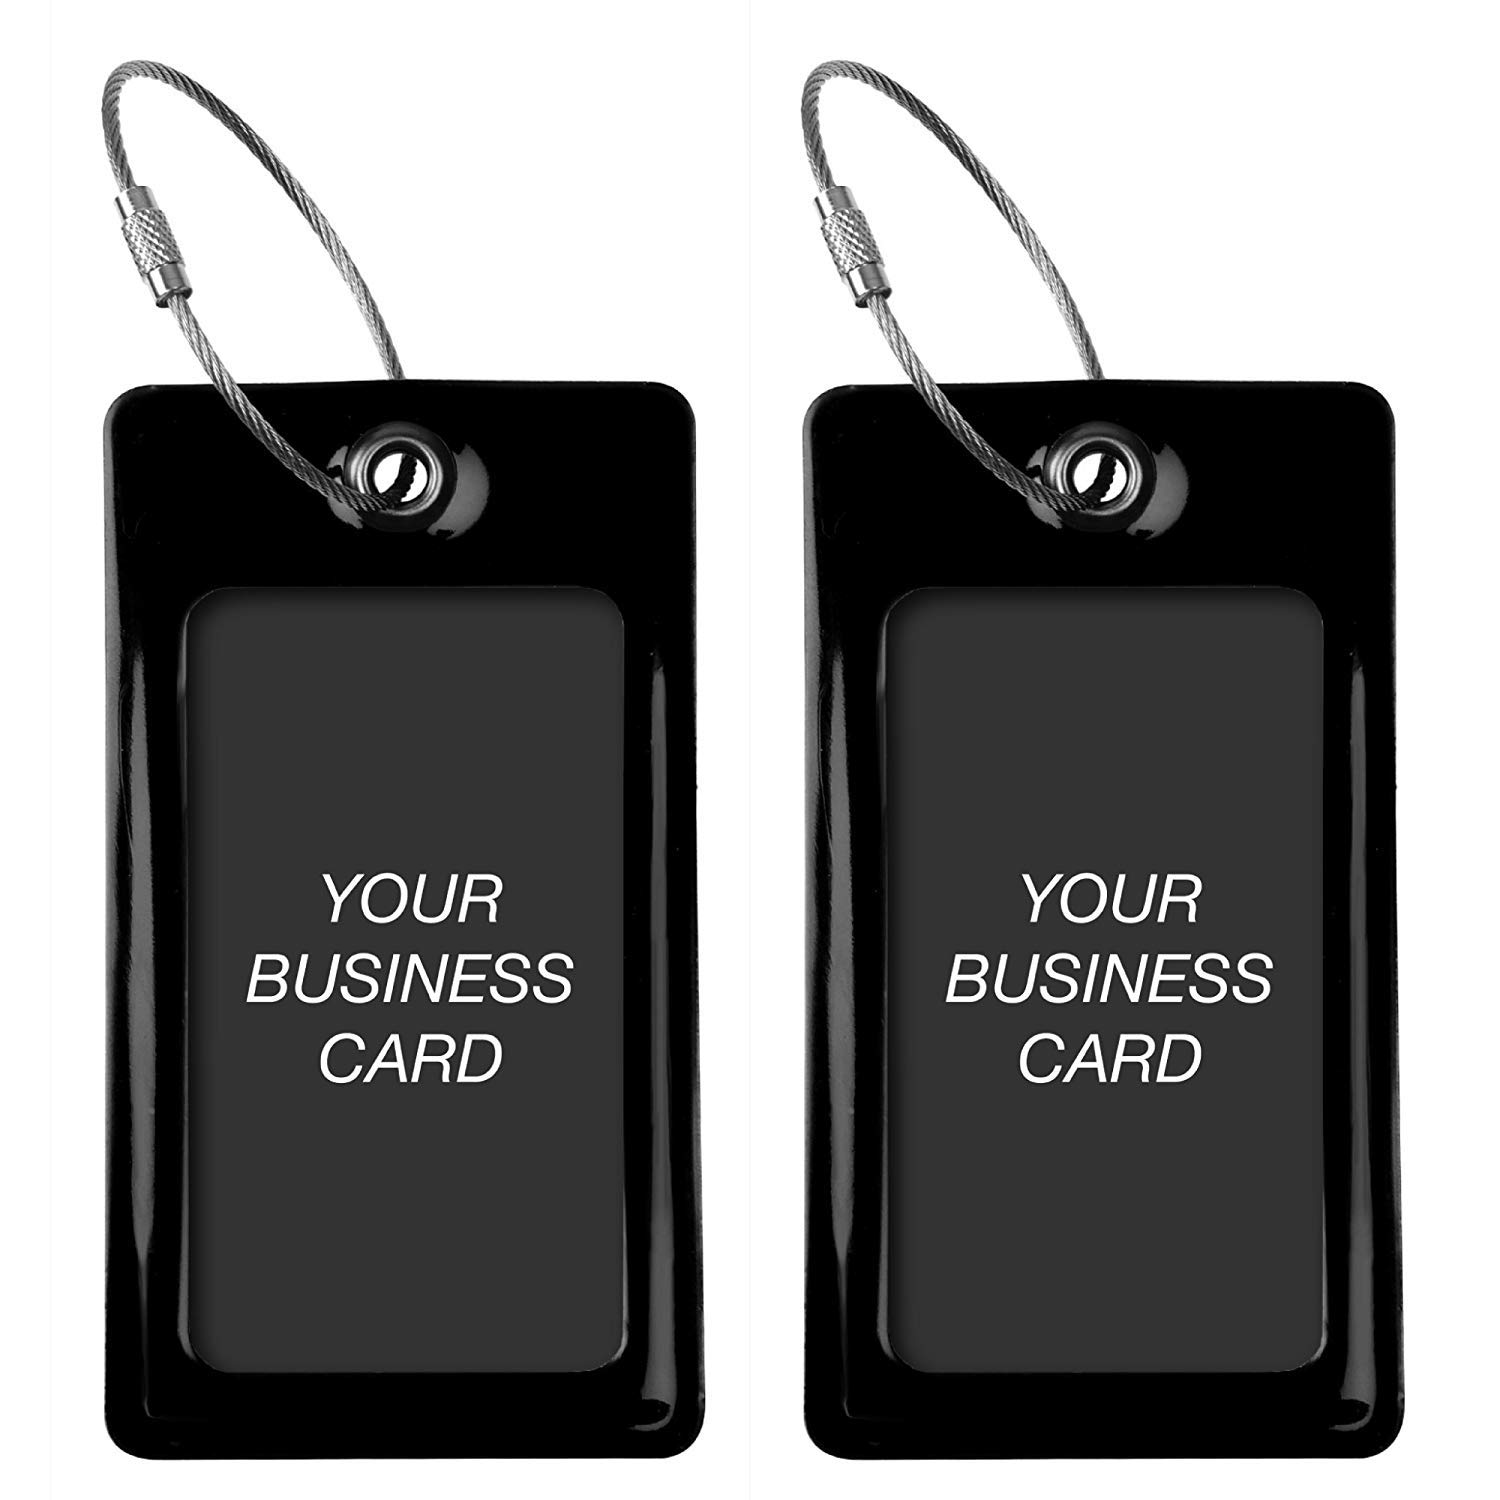 ProudGuy Luggage Tags TUFFTAAG, Business Card Holder, Suitcase Labels, Travel Accessories by ProudGuy